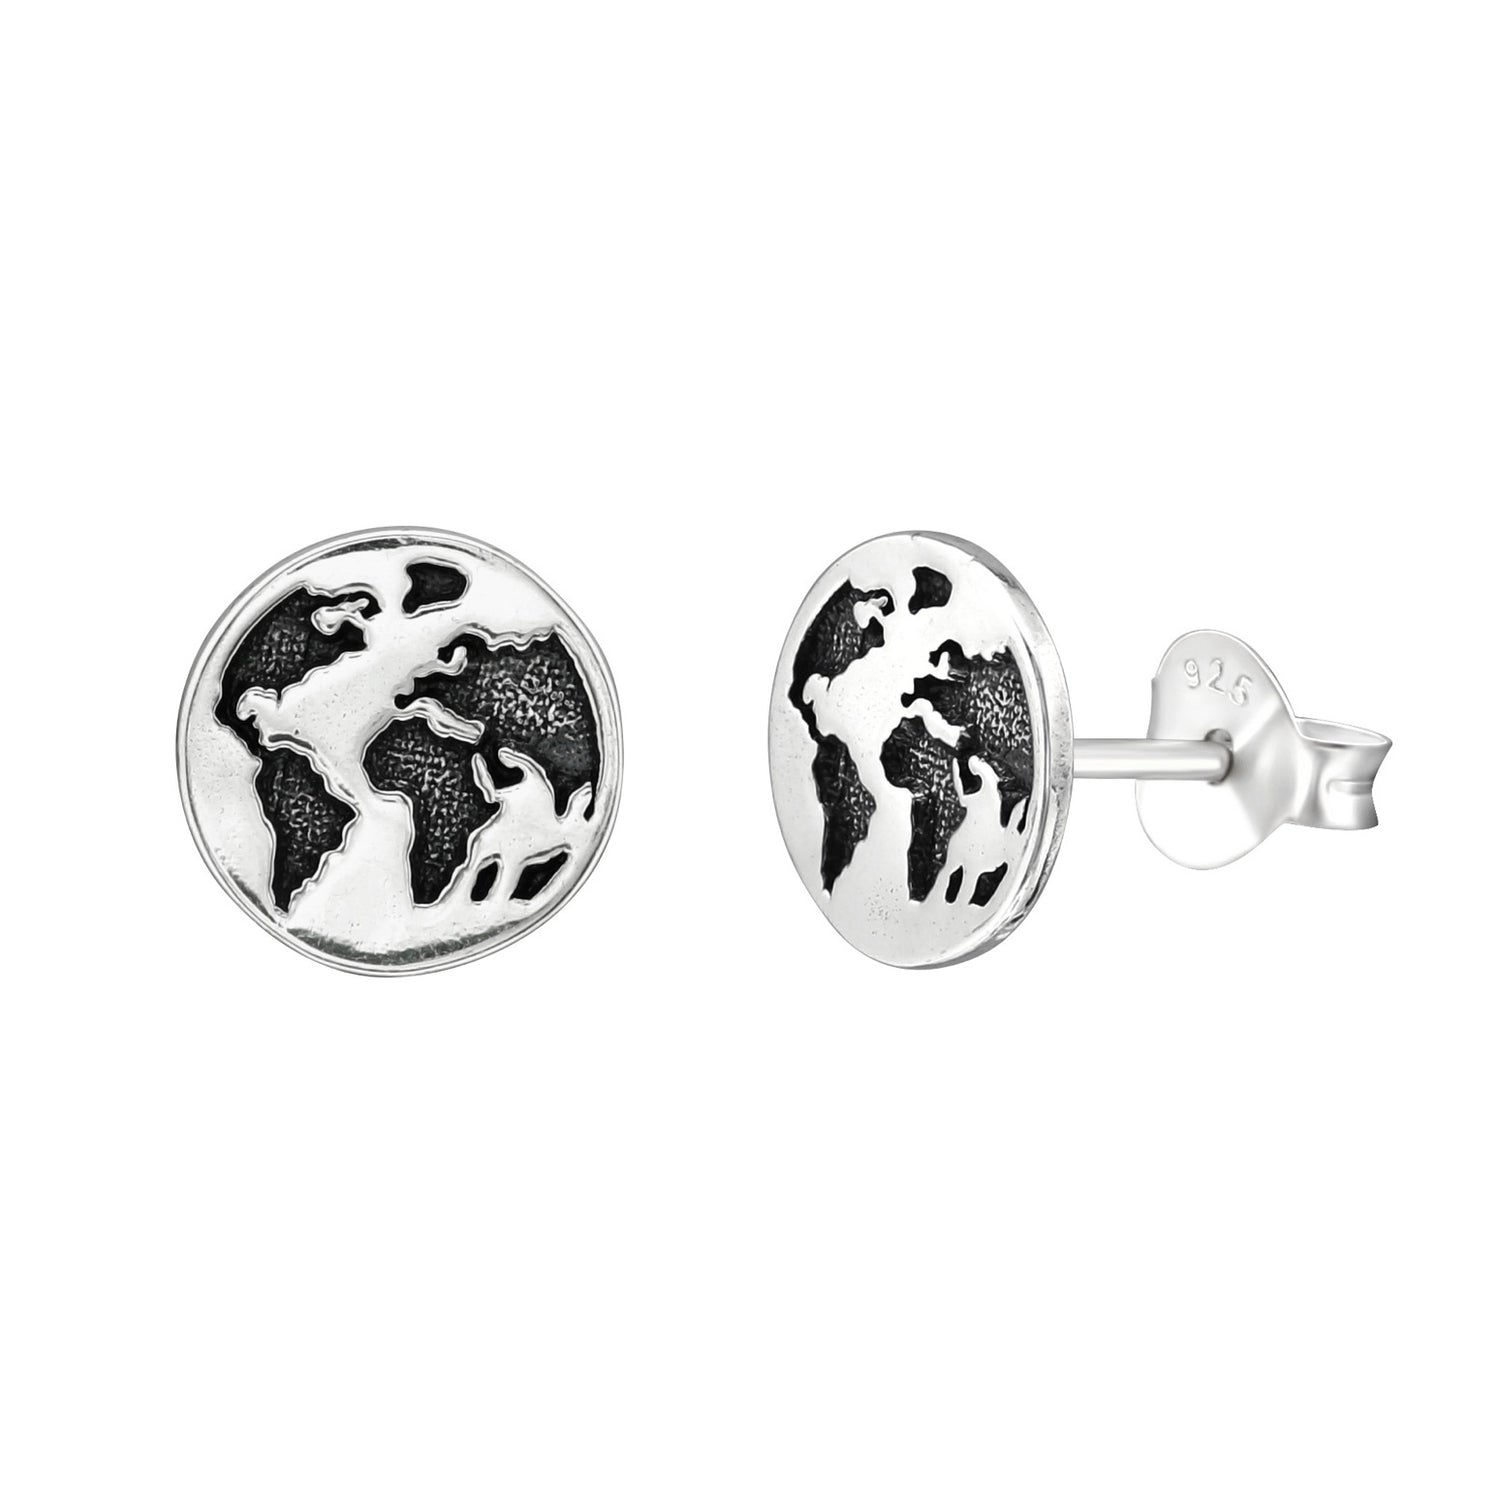 World Map Stud Earrings